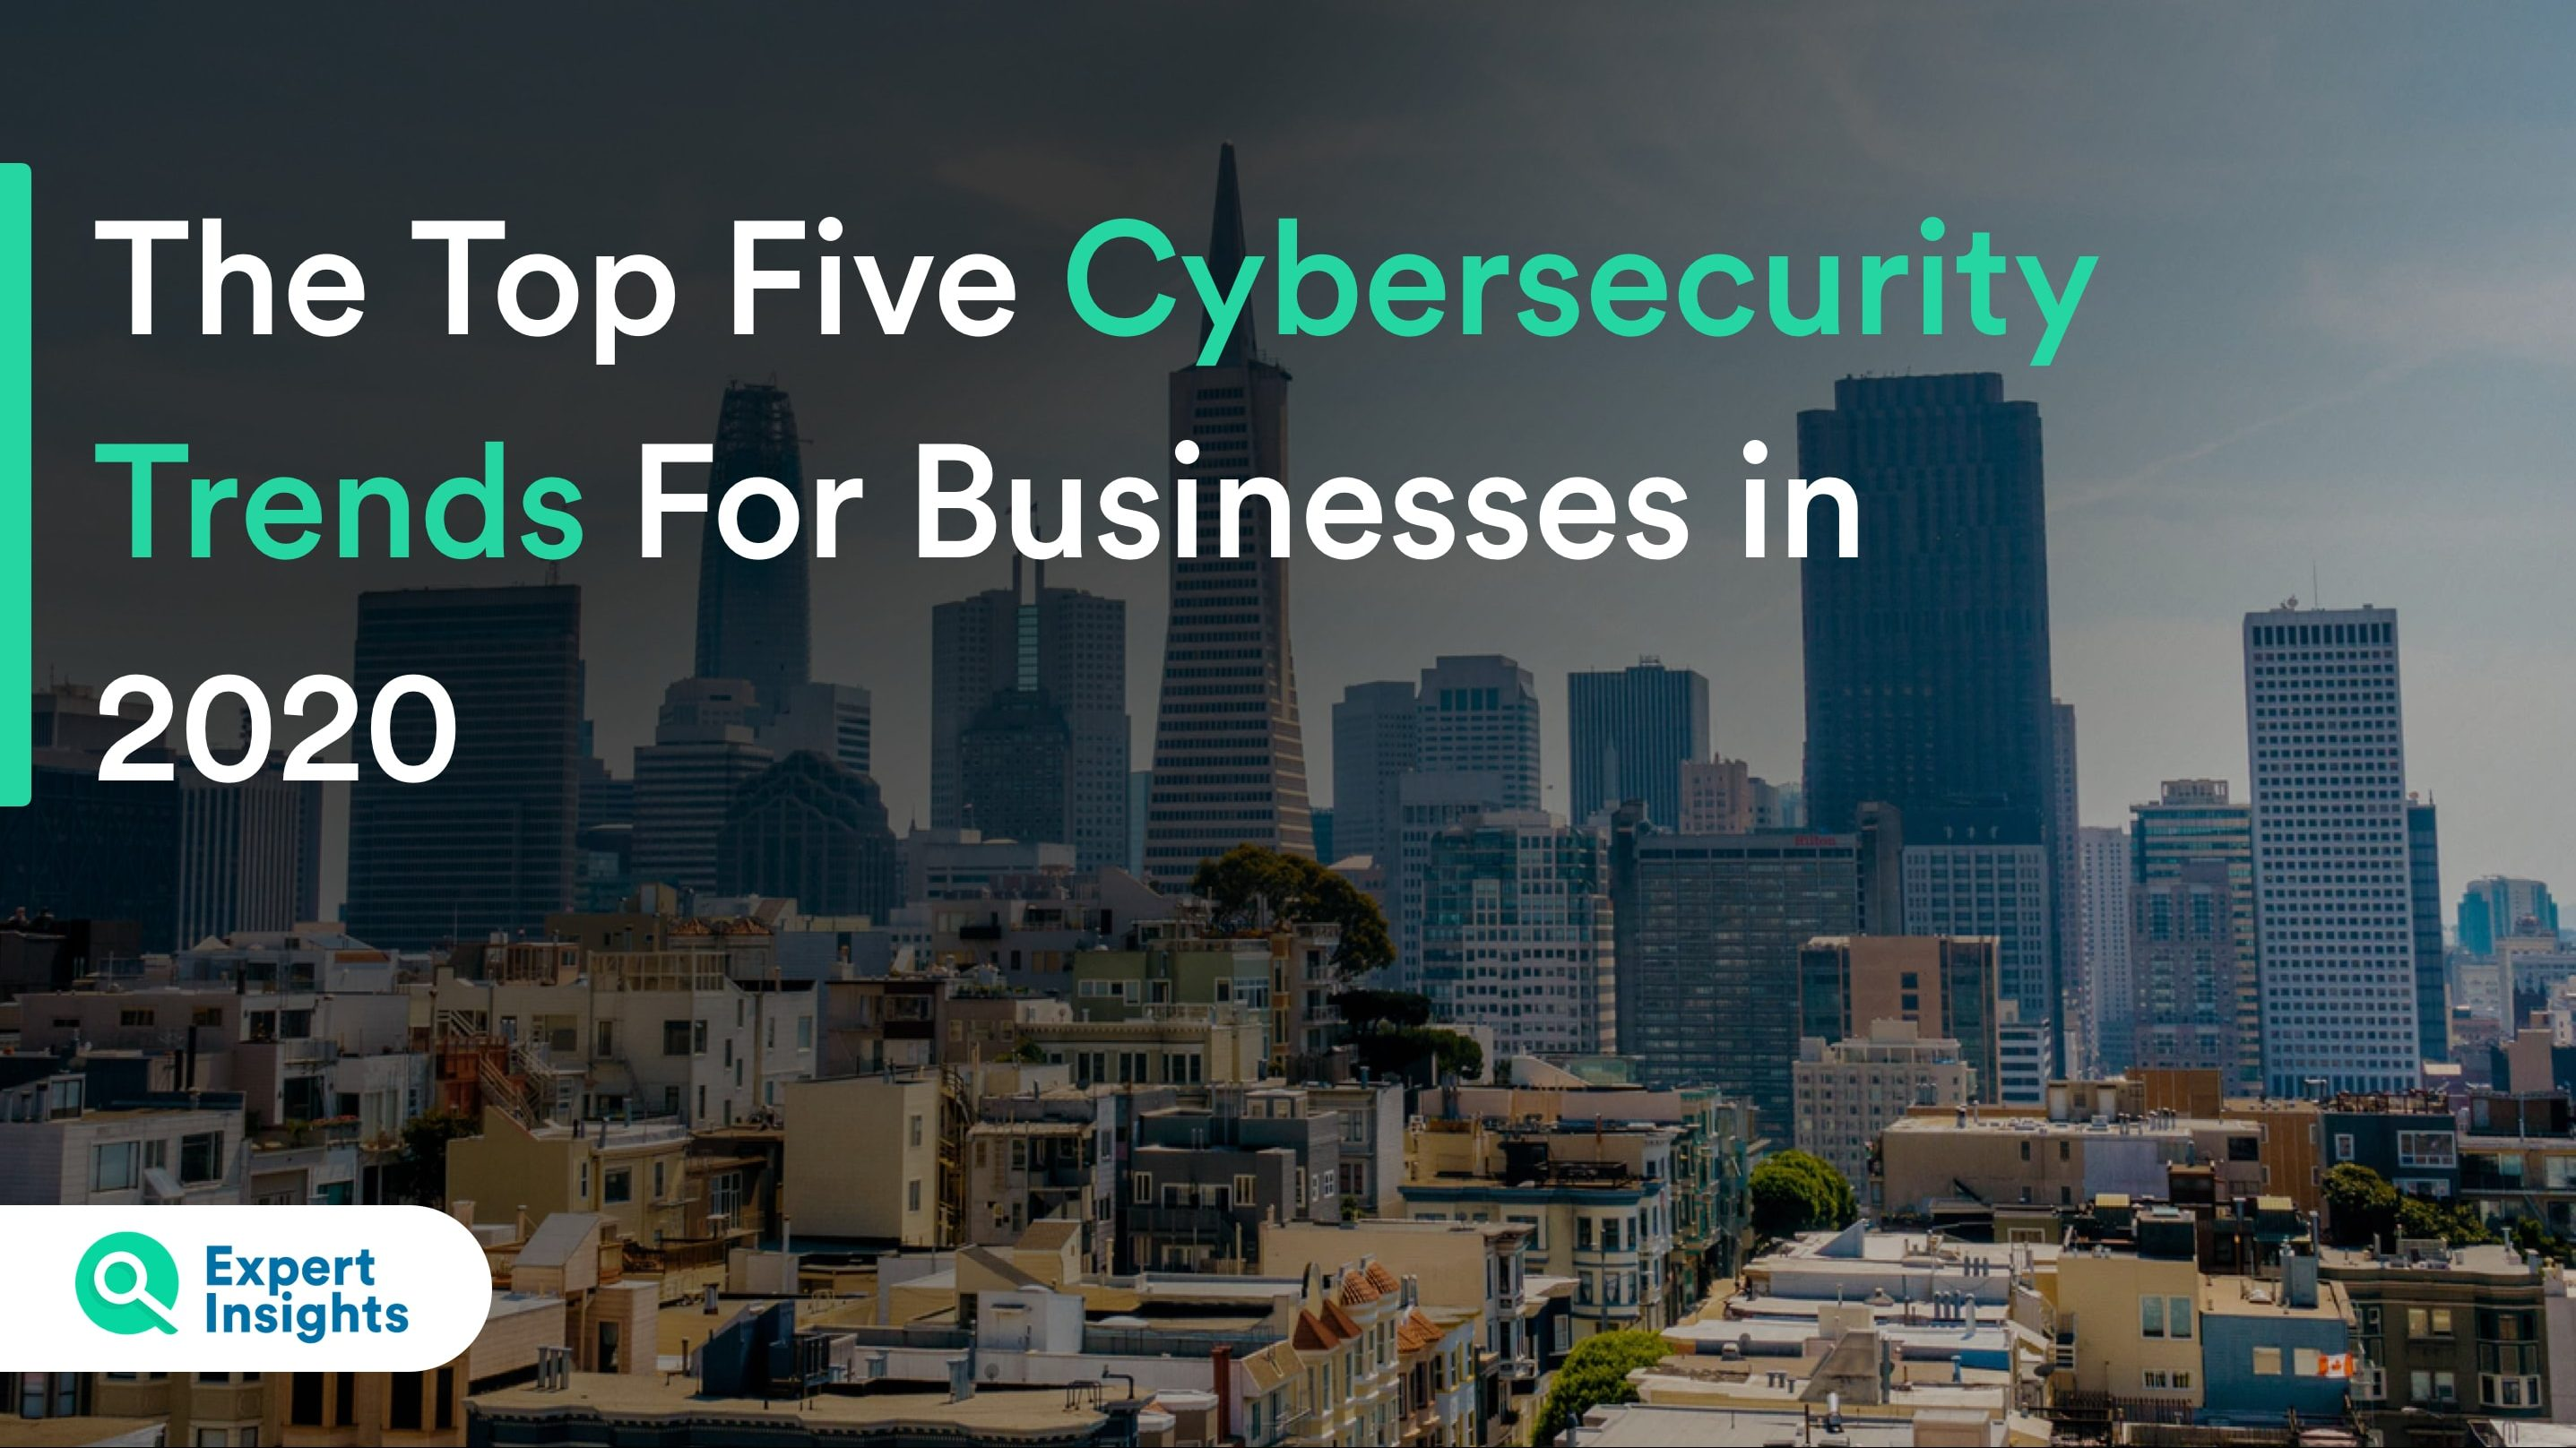 5 cybersecurity trends for business